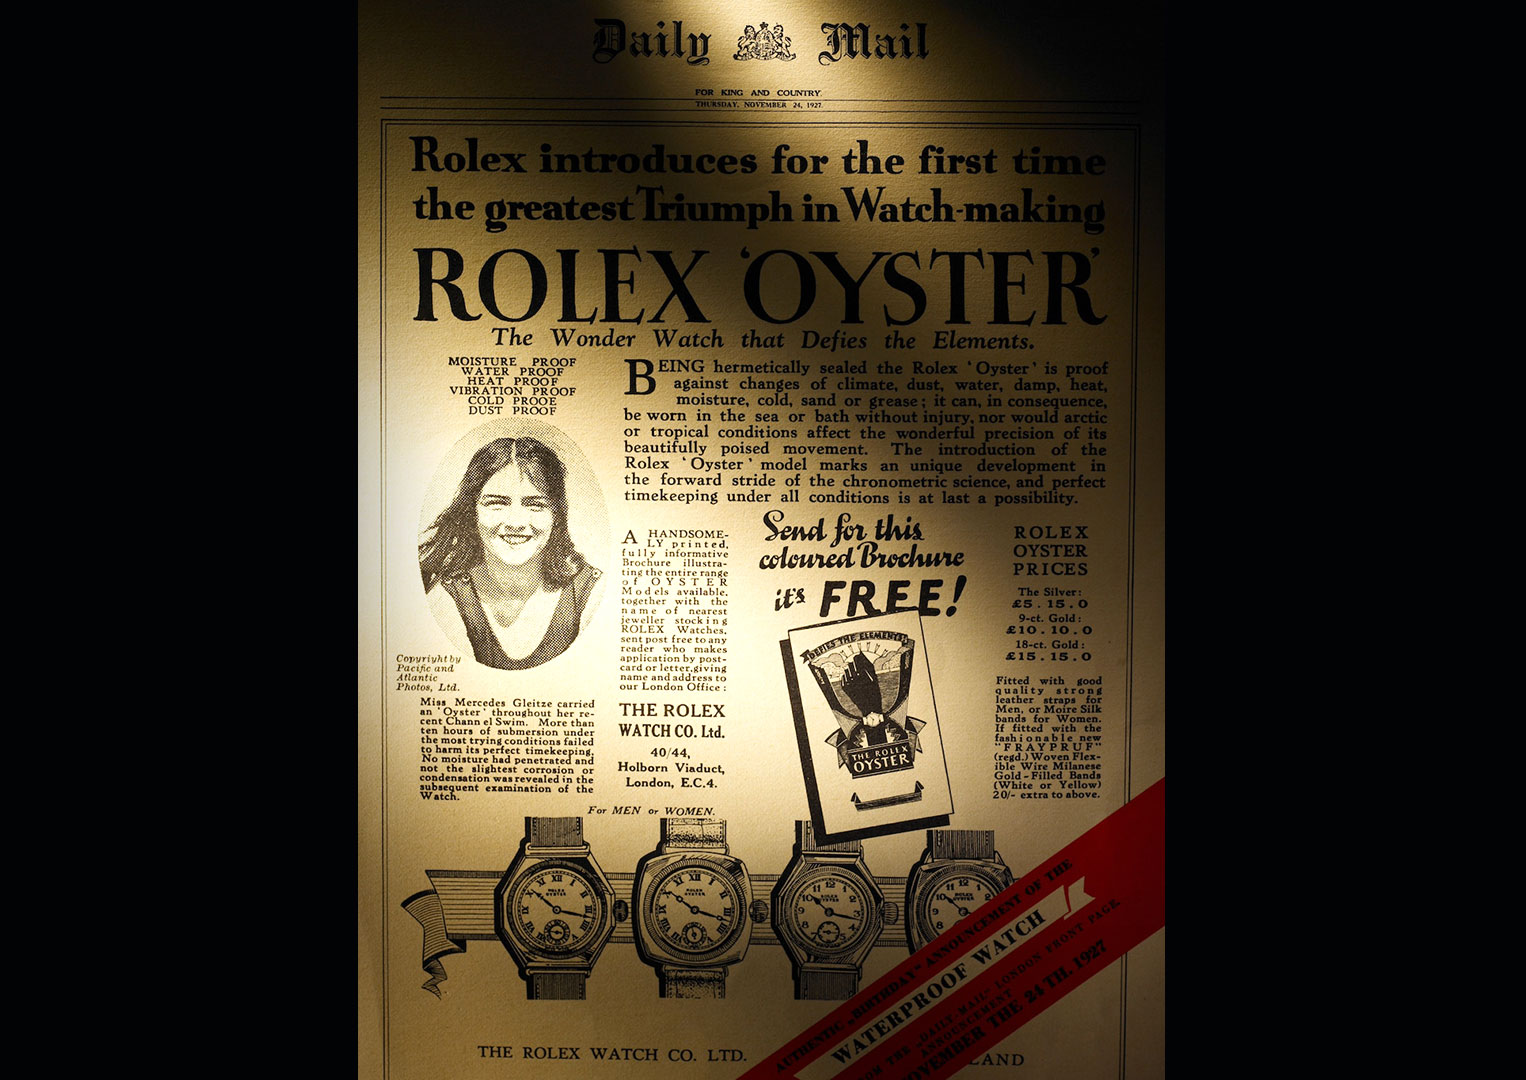 A Rolex advert featuring Mercedes Gleitze, the first woman to swim the English channel